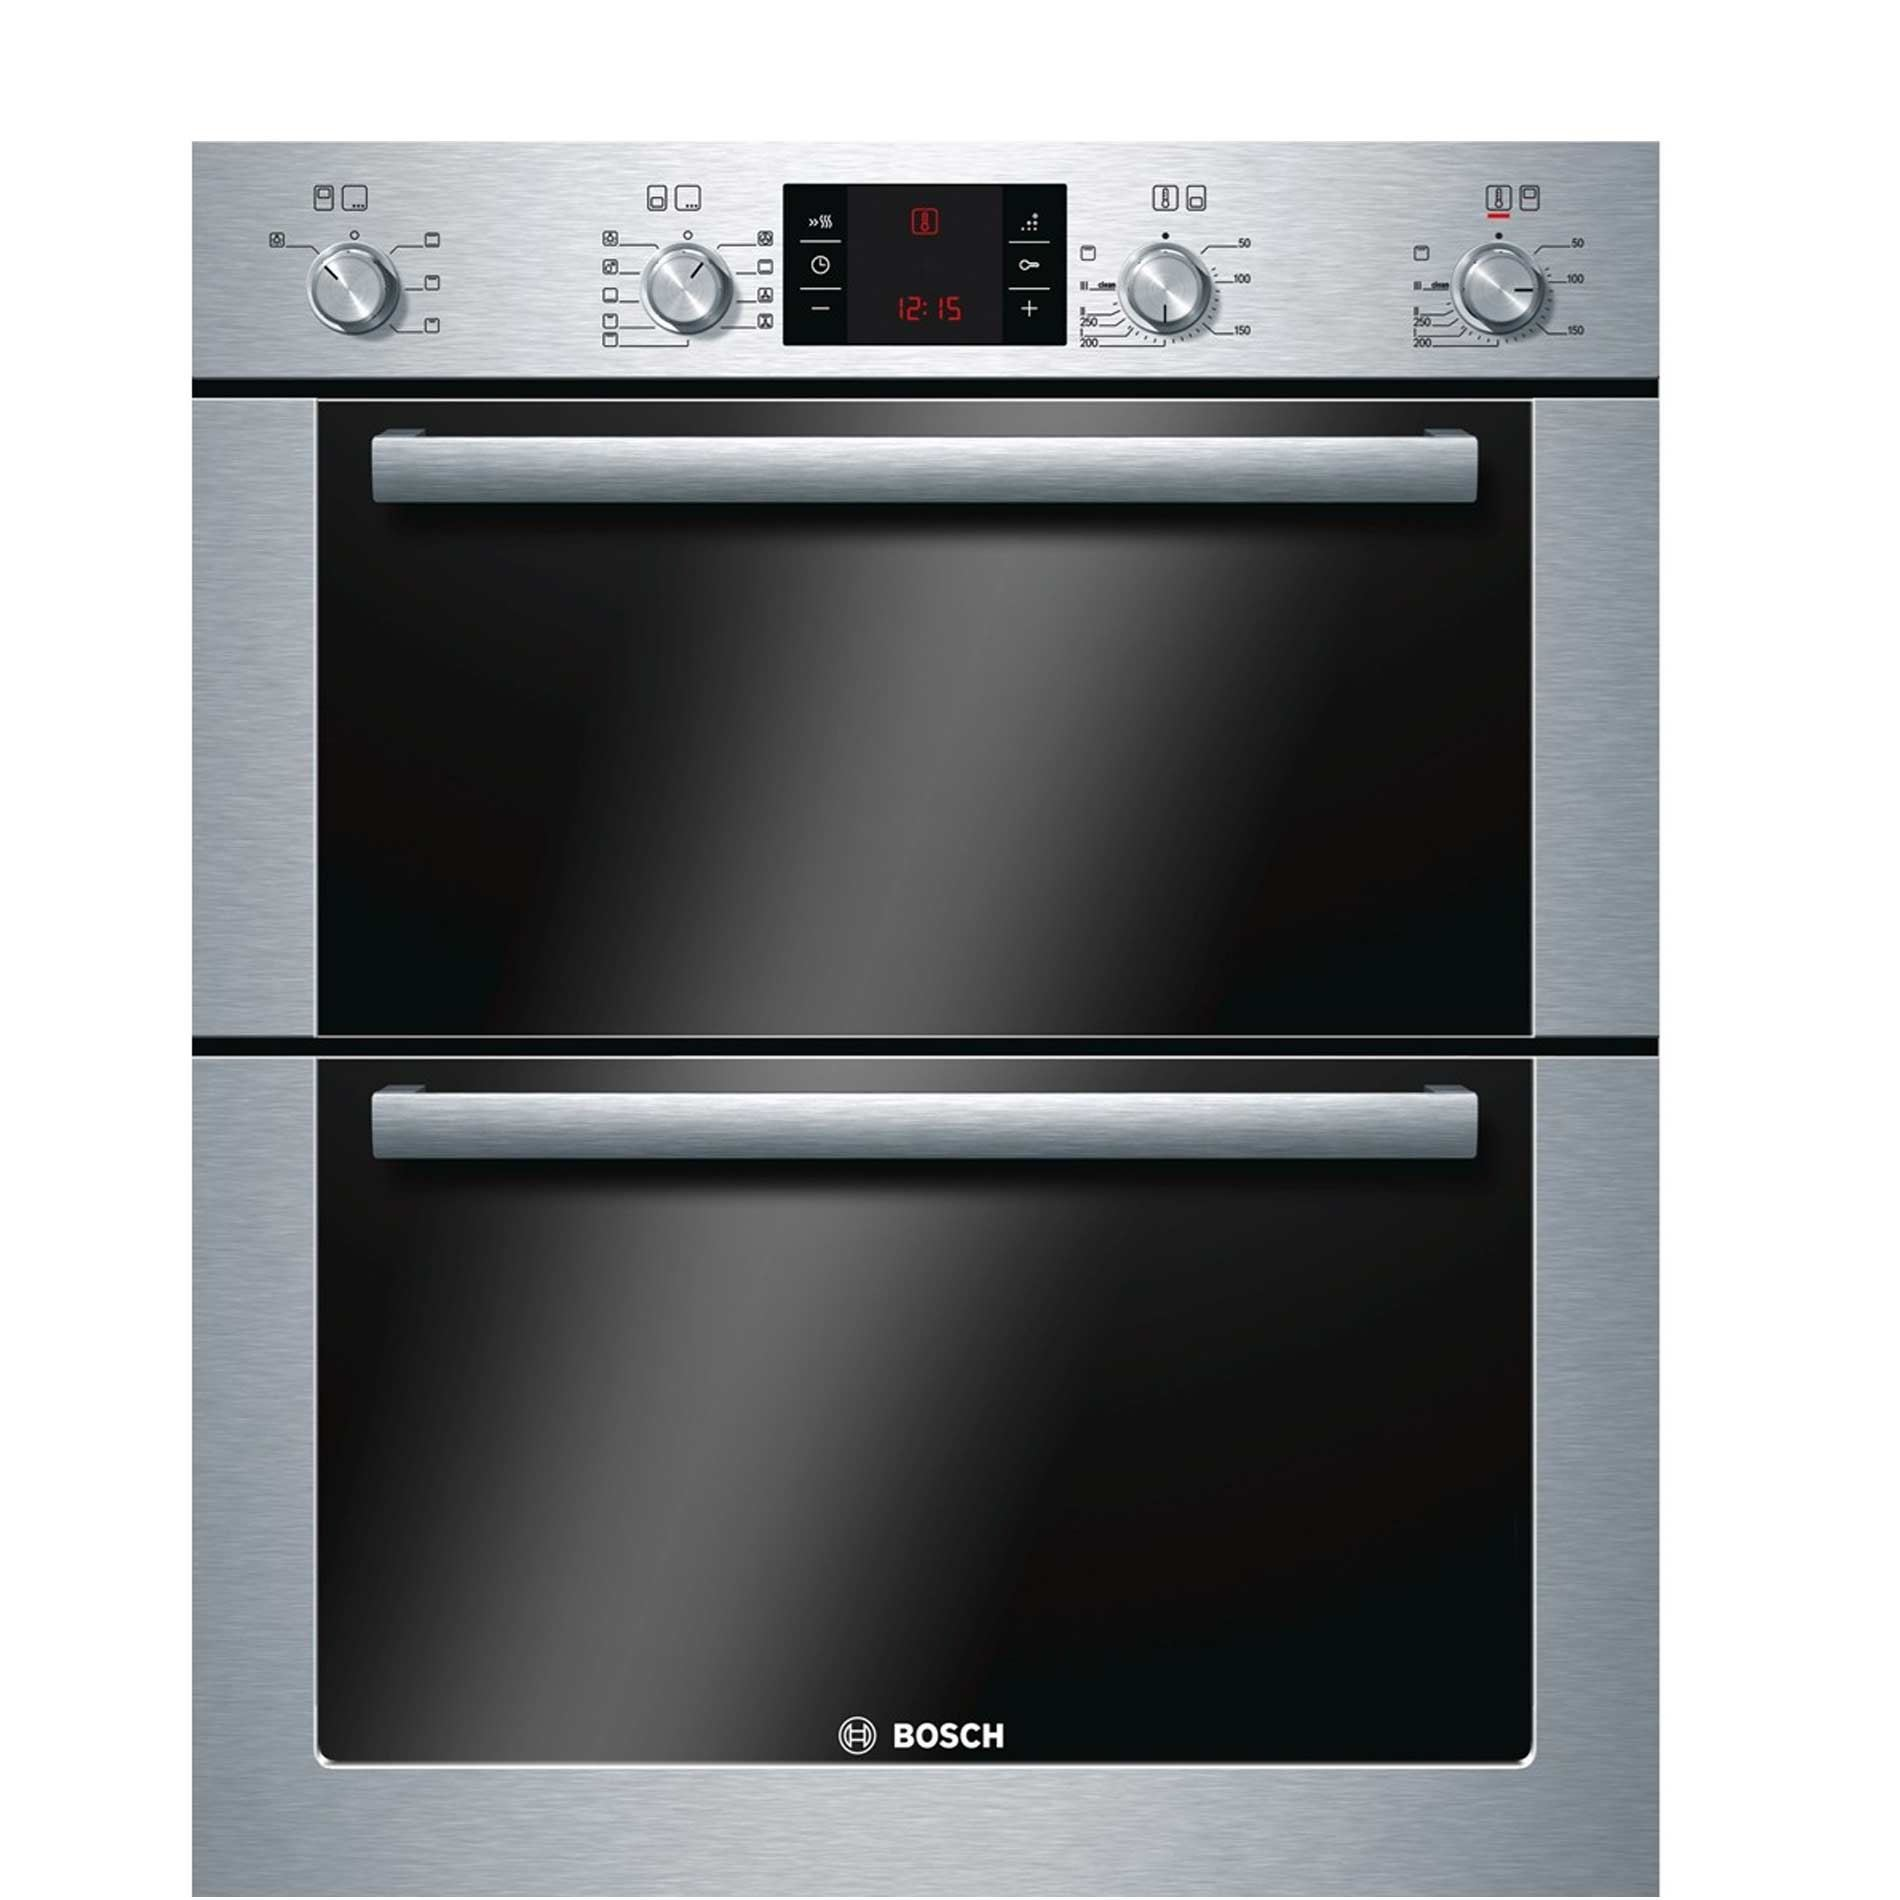 Picture of HBN53R550B Built-Under Double Oven